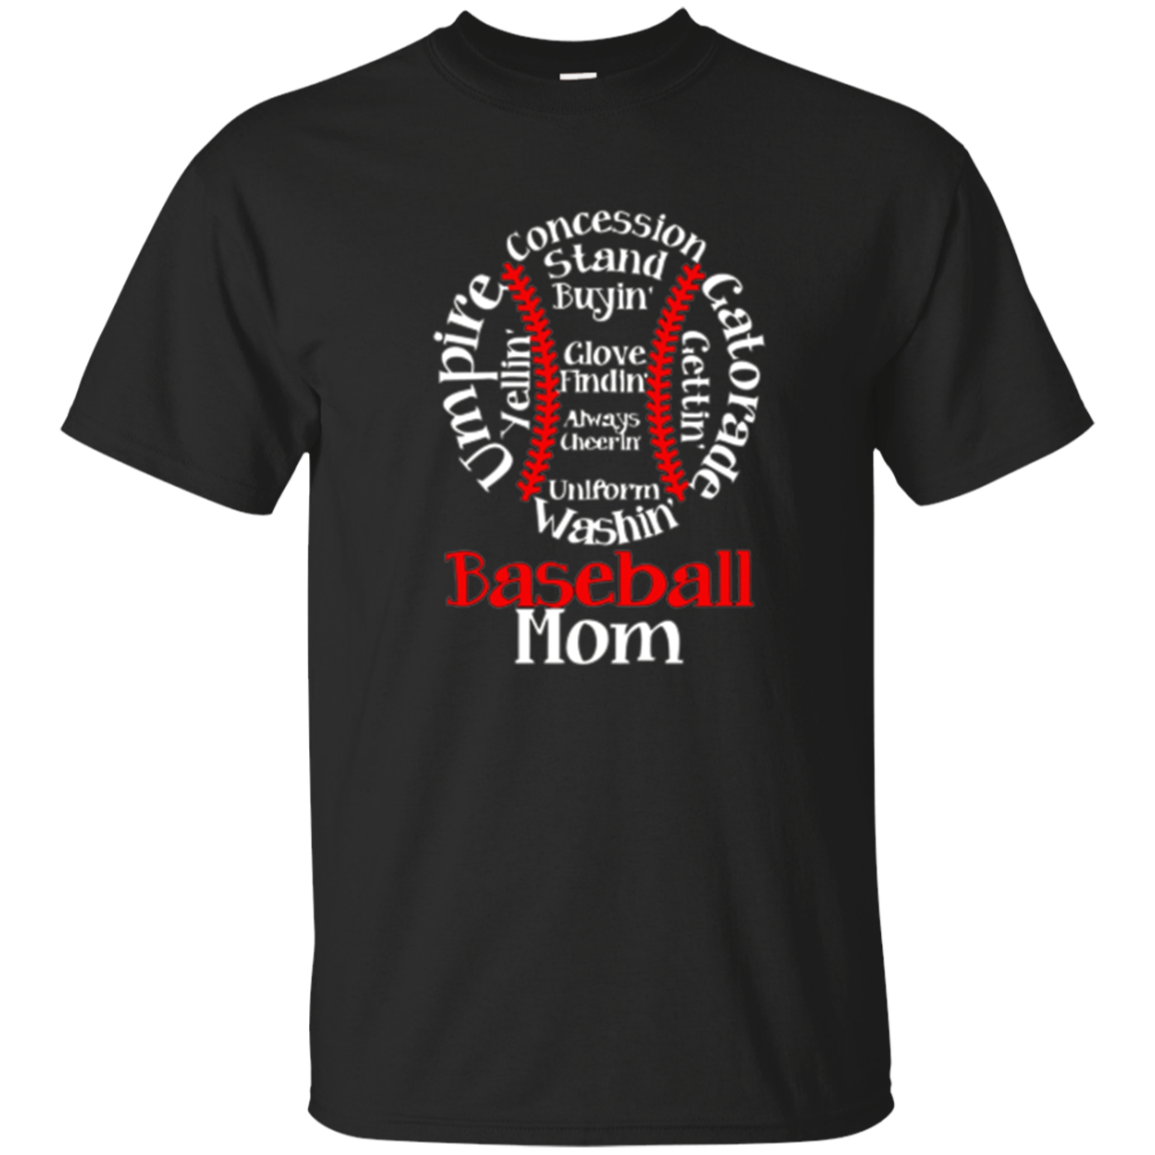 Baseball Mom T Shirt Amazing Mother's Day Gift